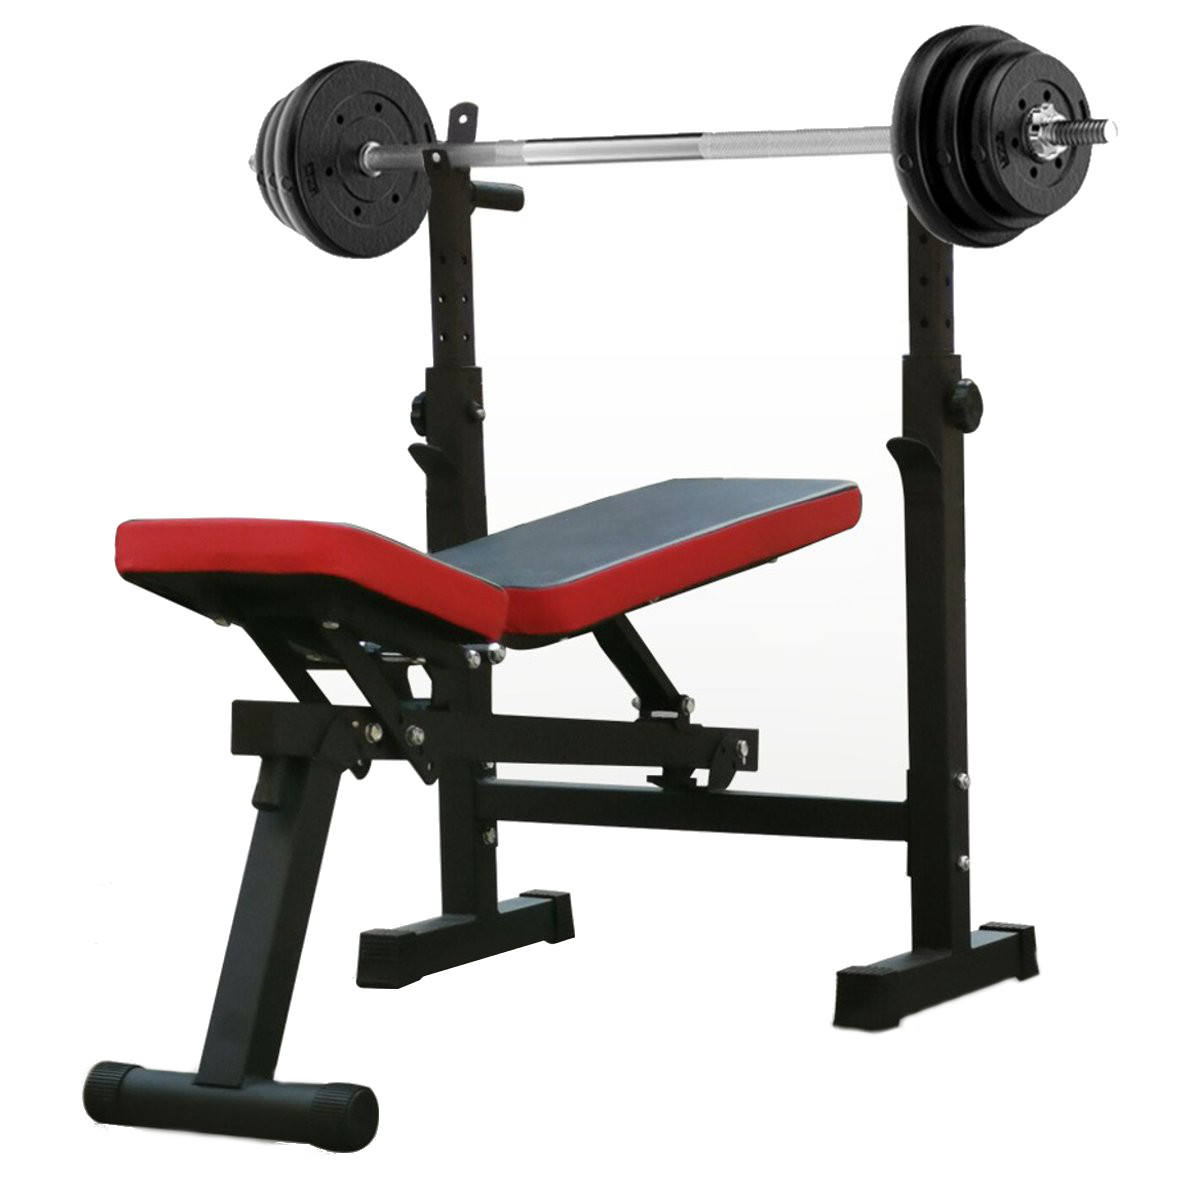 Fast Lead-time Adjustable-style Weight Bed Folding Bench Press Squat Barbell Lifting Training Bench Bracket Barbell Rack Weigh